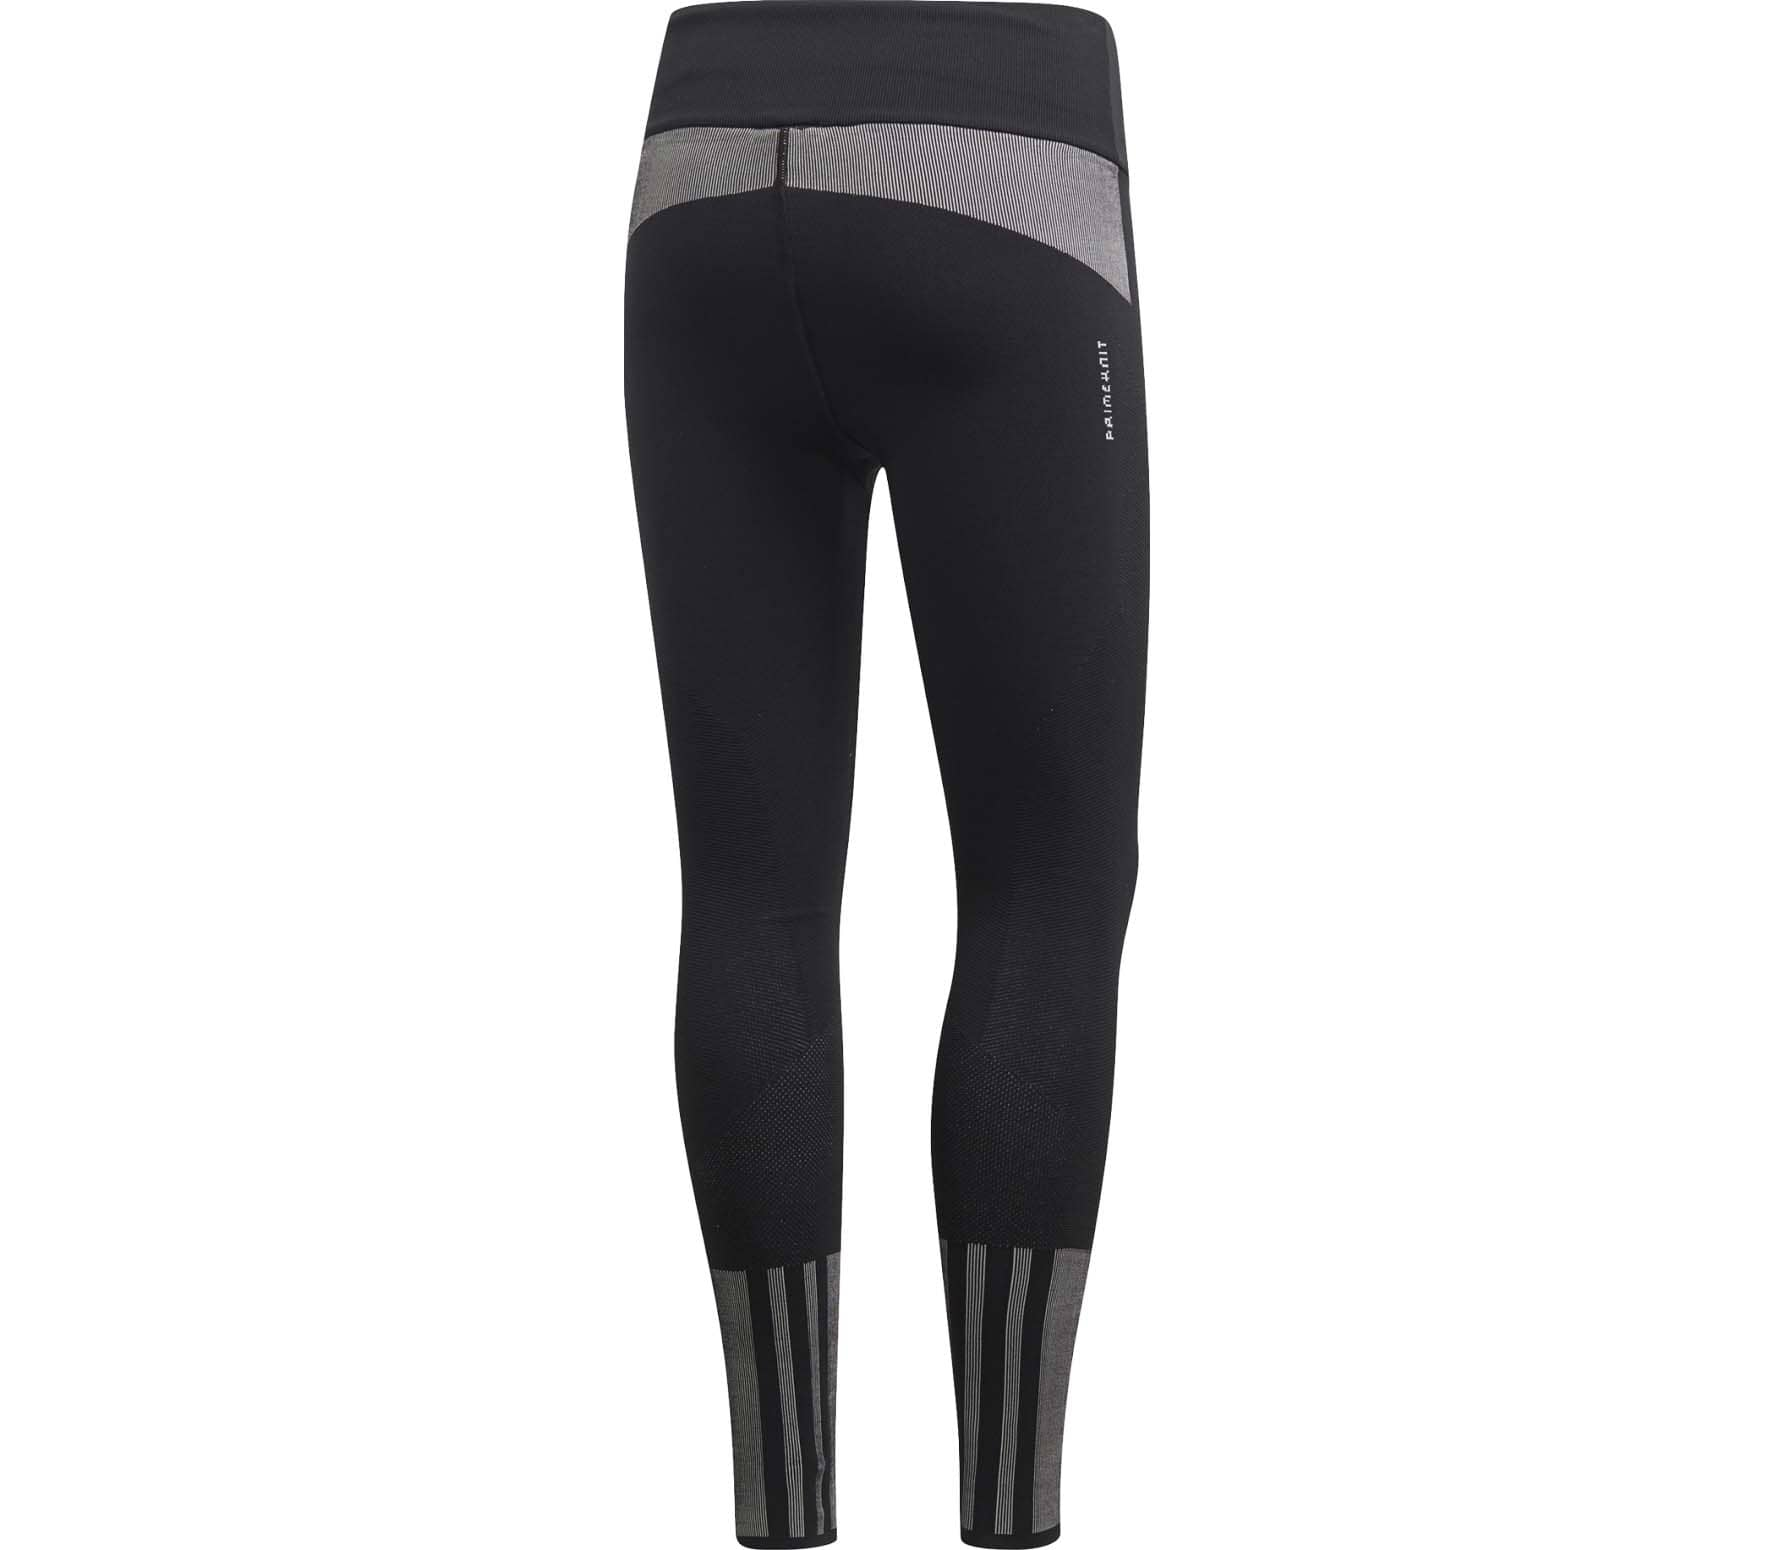 60a100bbd5b adidas Performance - Believe This Primeknit LTE women's training pants  (black)